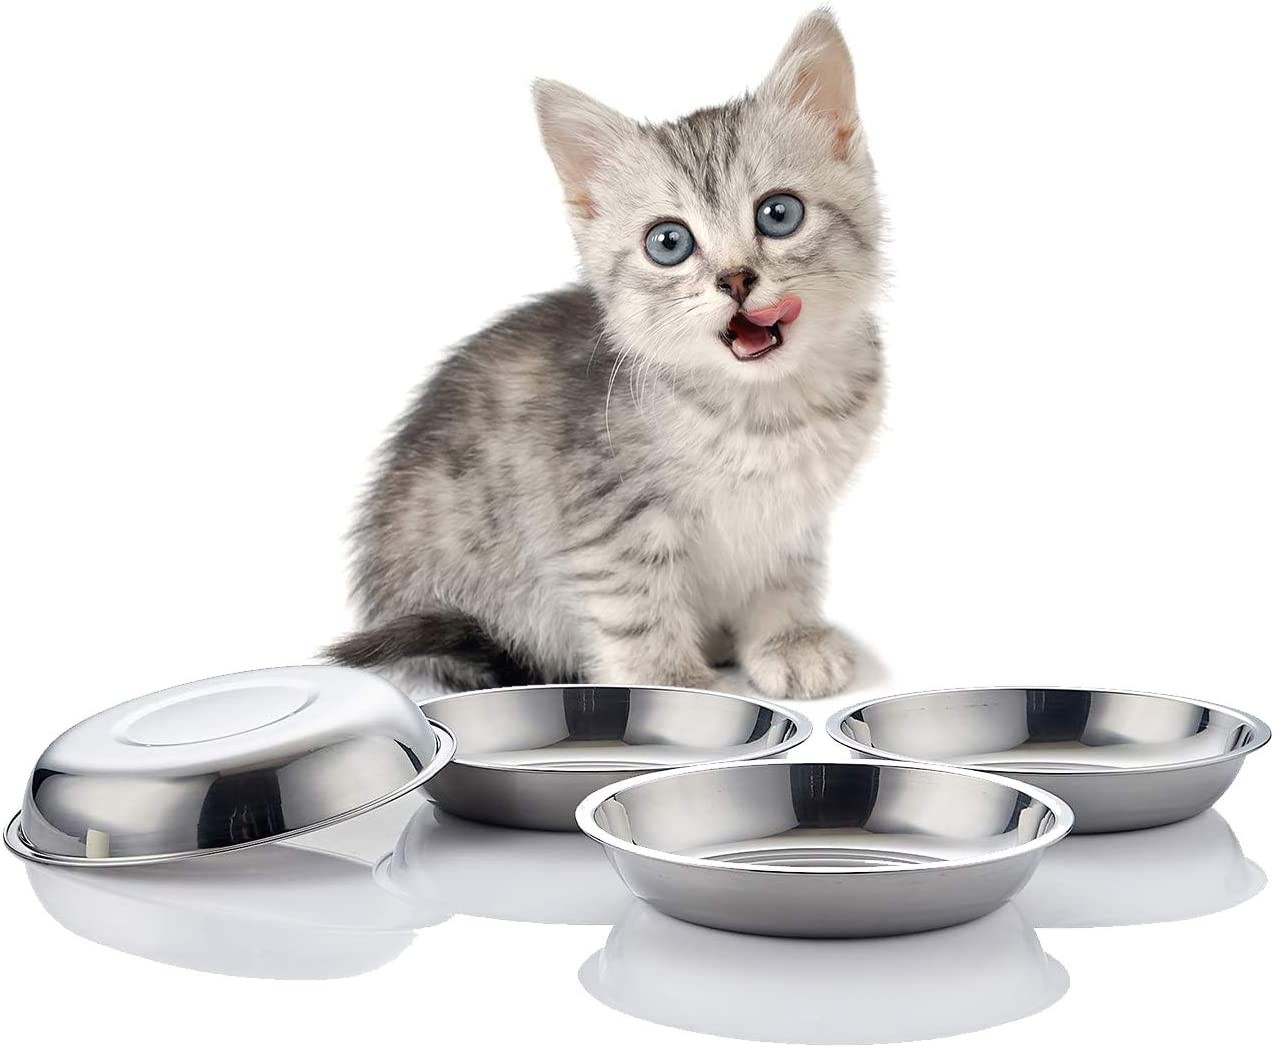 VENTION Stainless Steel Whisker Relief Cat Food Bowl, Shallow Metal Cat Bowls Set, 21 Oz Replacement Pet Cat Feeding Dishes for Raised/Elevated Stands, Work for Dog Plate, Dishwasher Safe, Set of 4